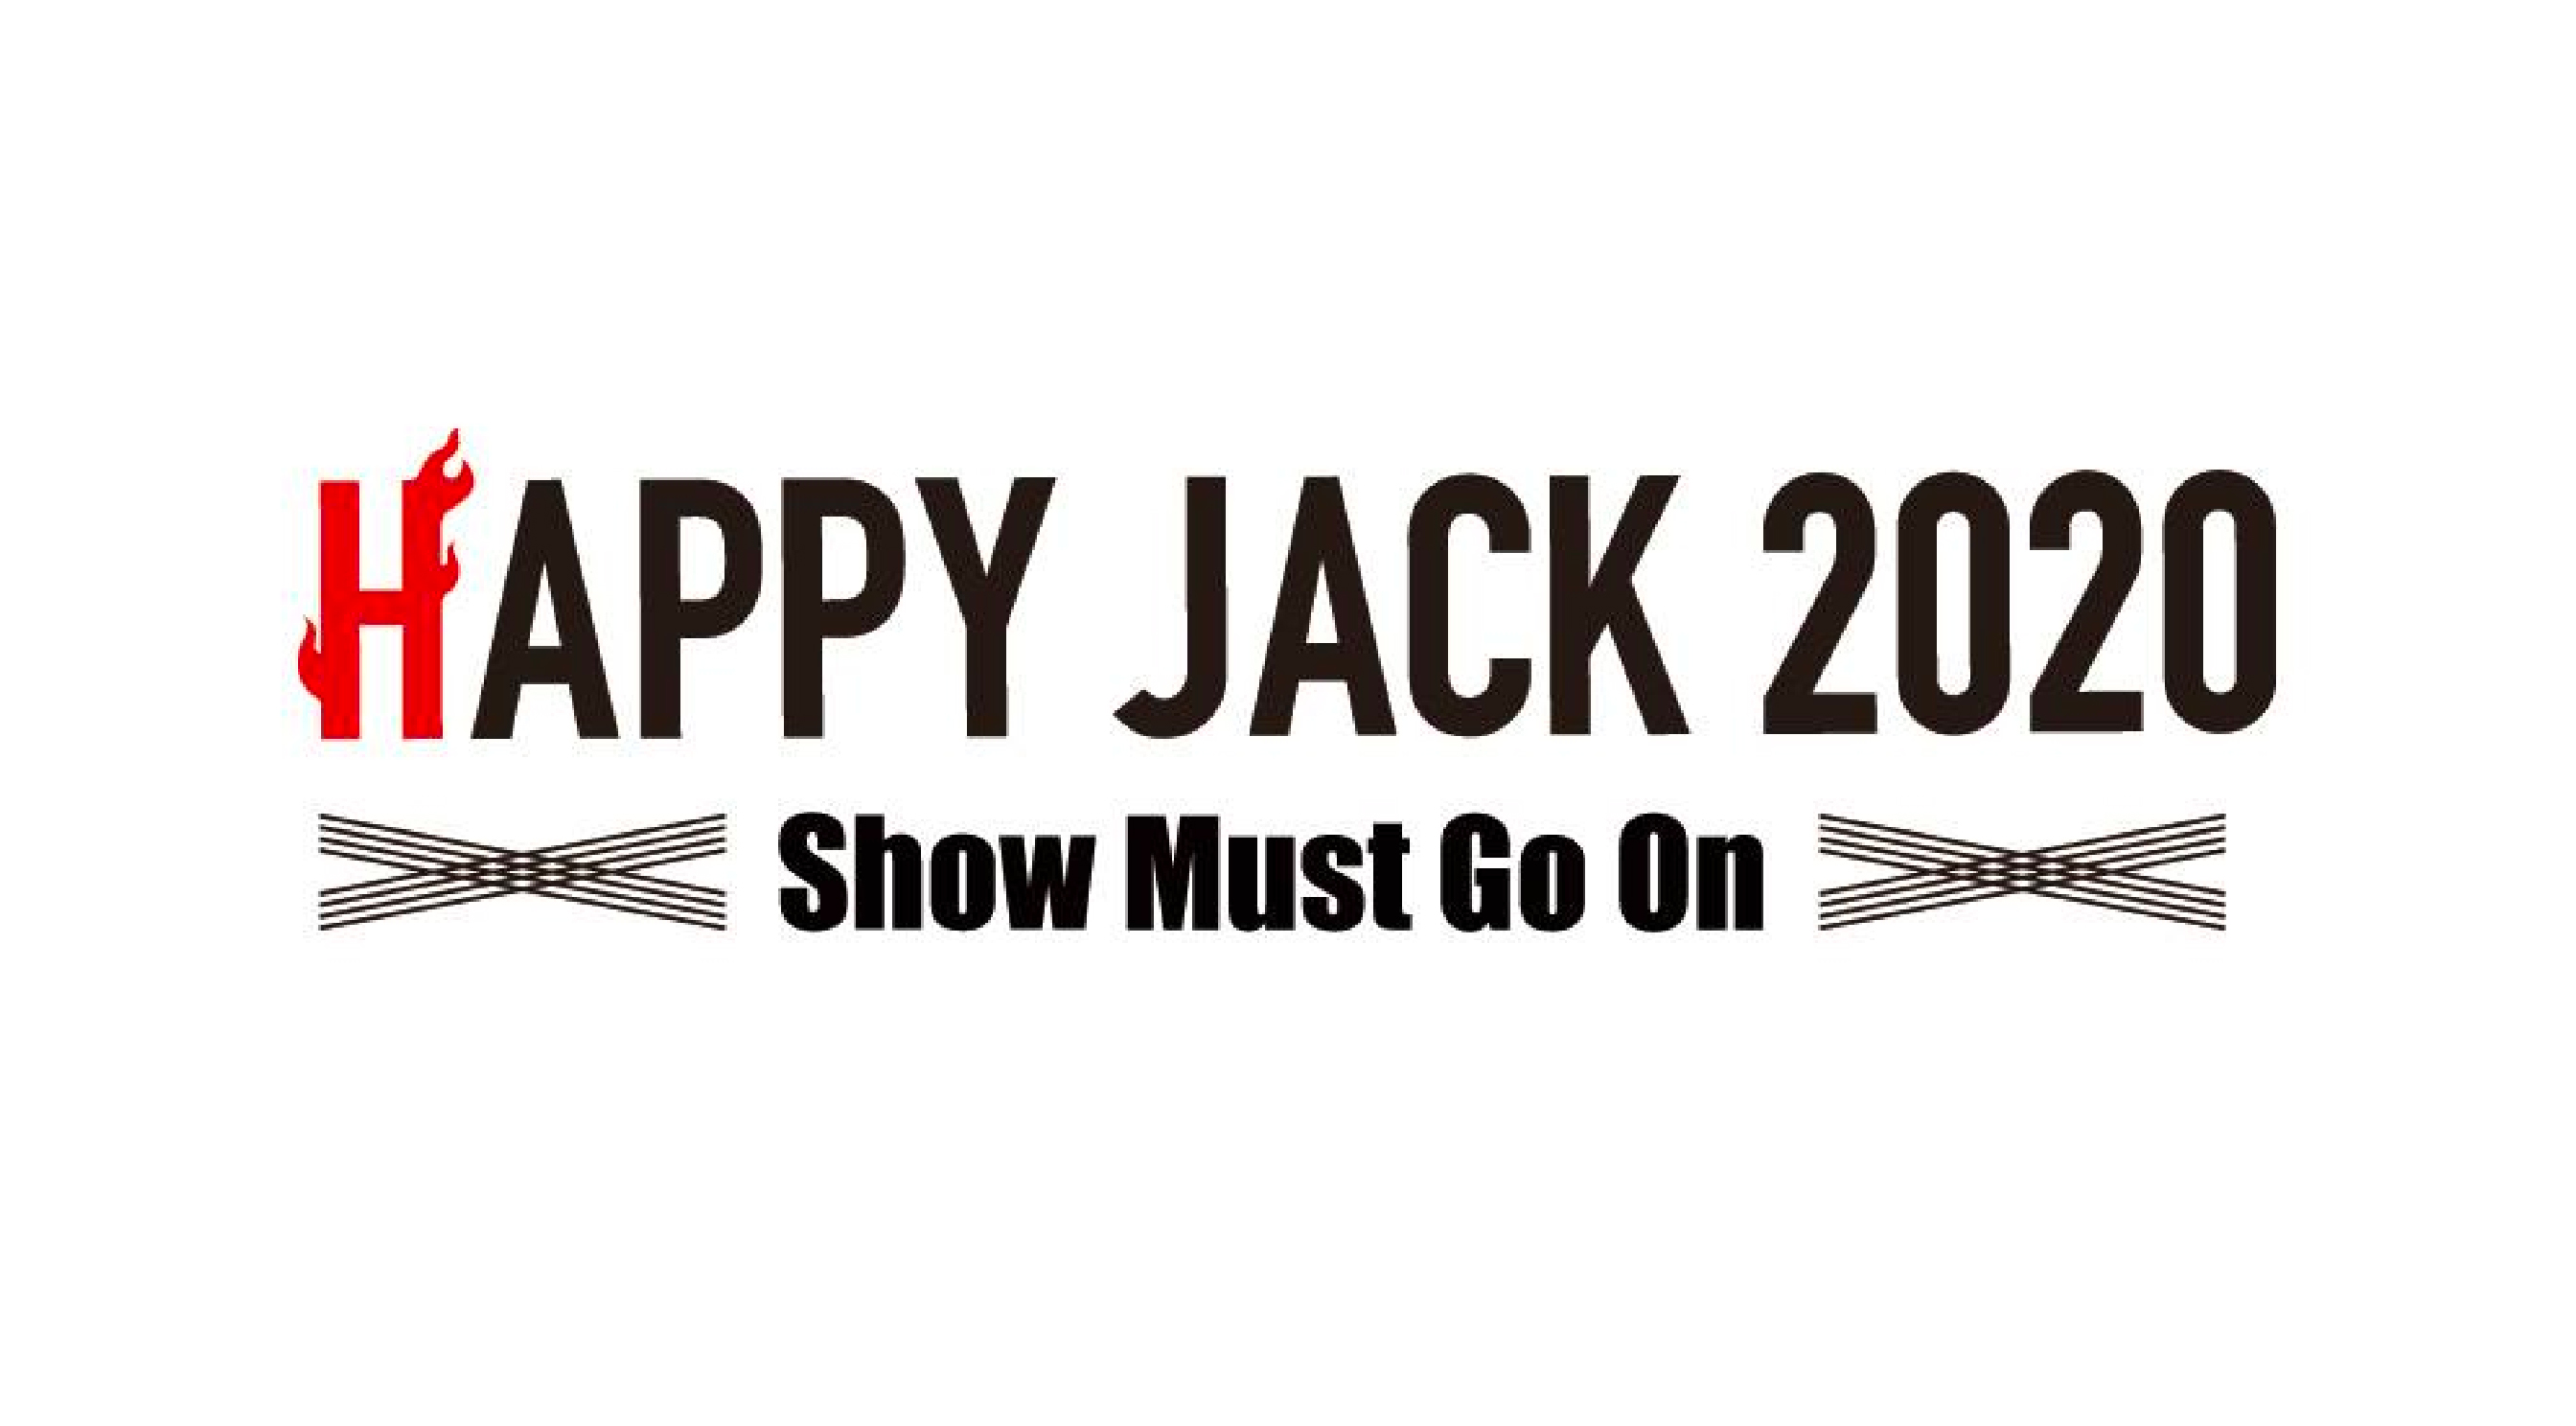 HAPPY JACK 2020 ~Show Must Go On~